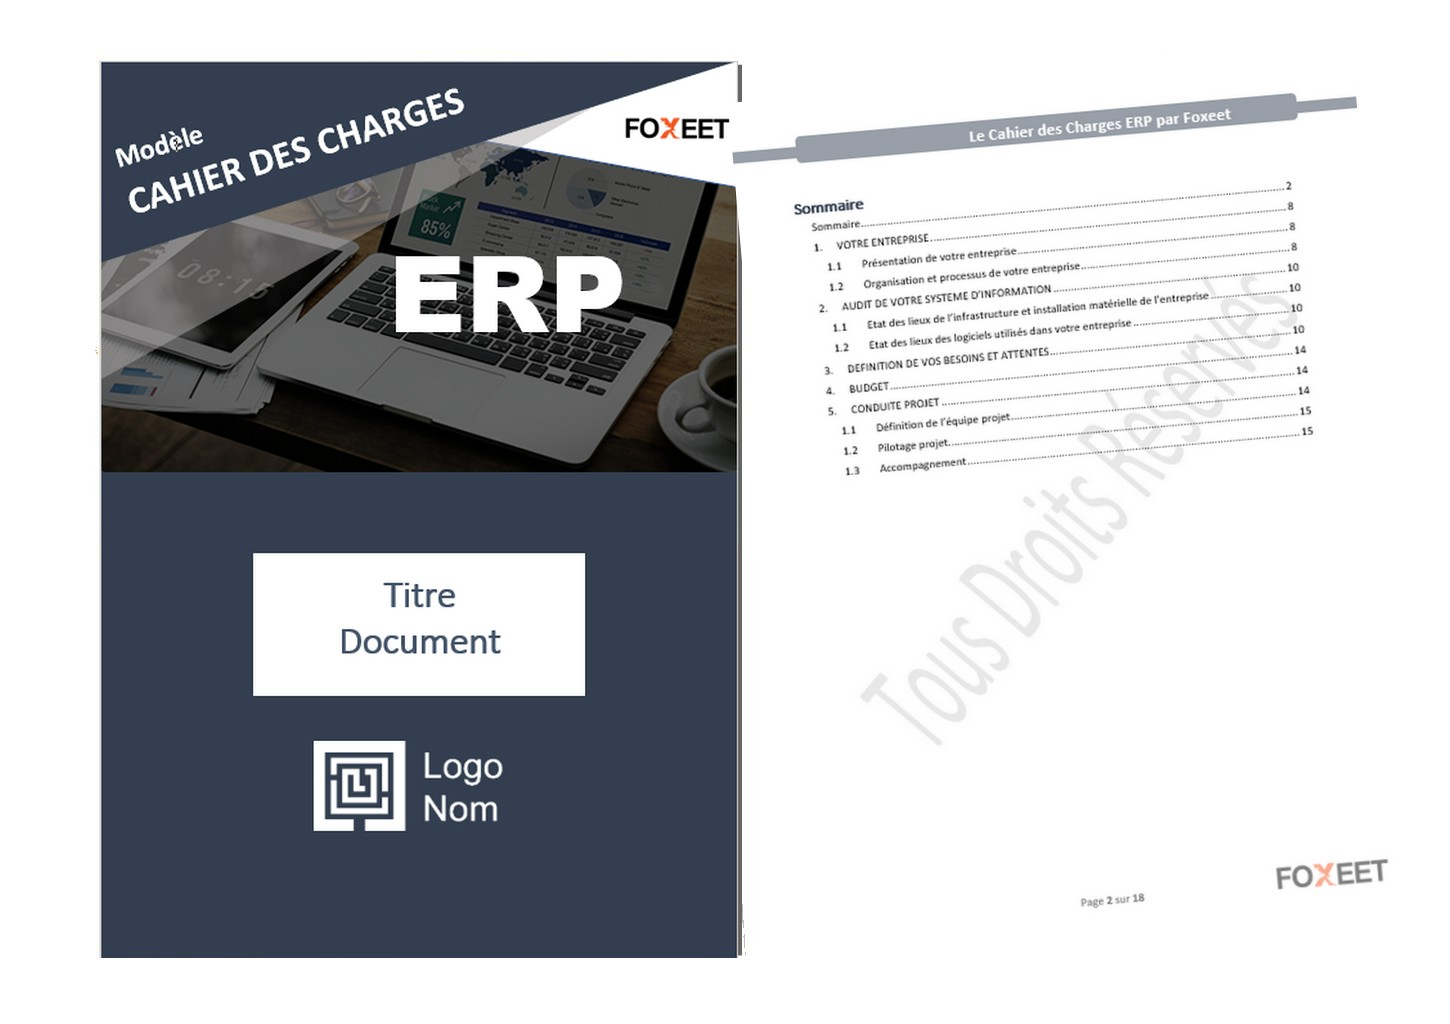 guide_cahier_des_charges_erp